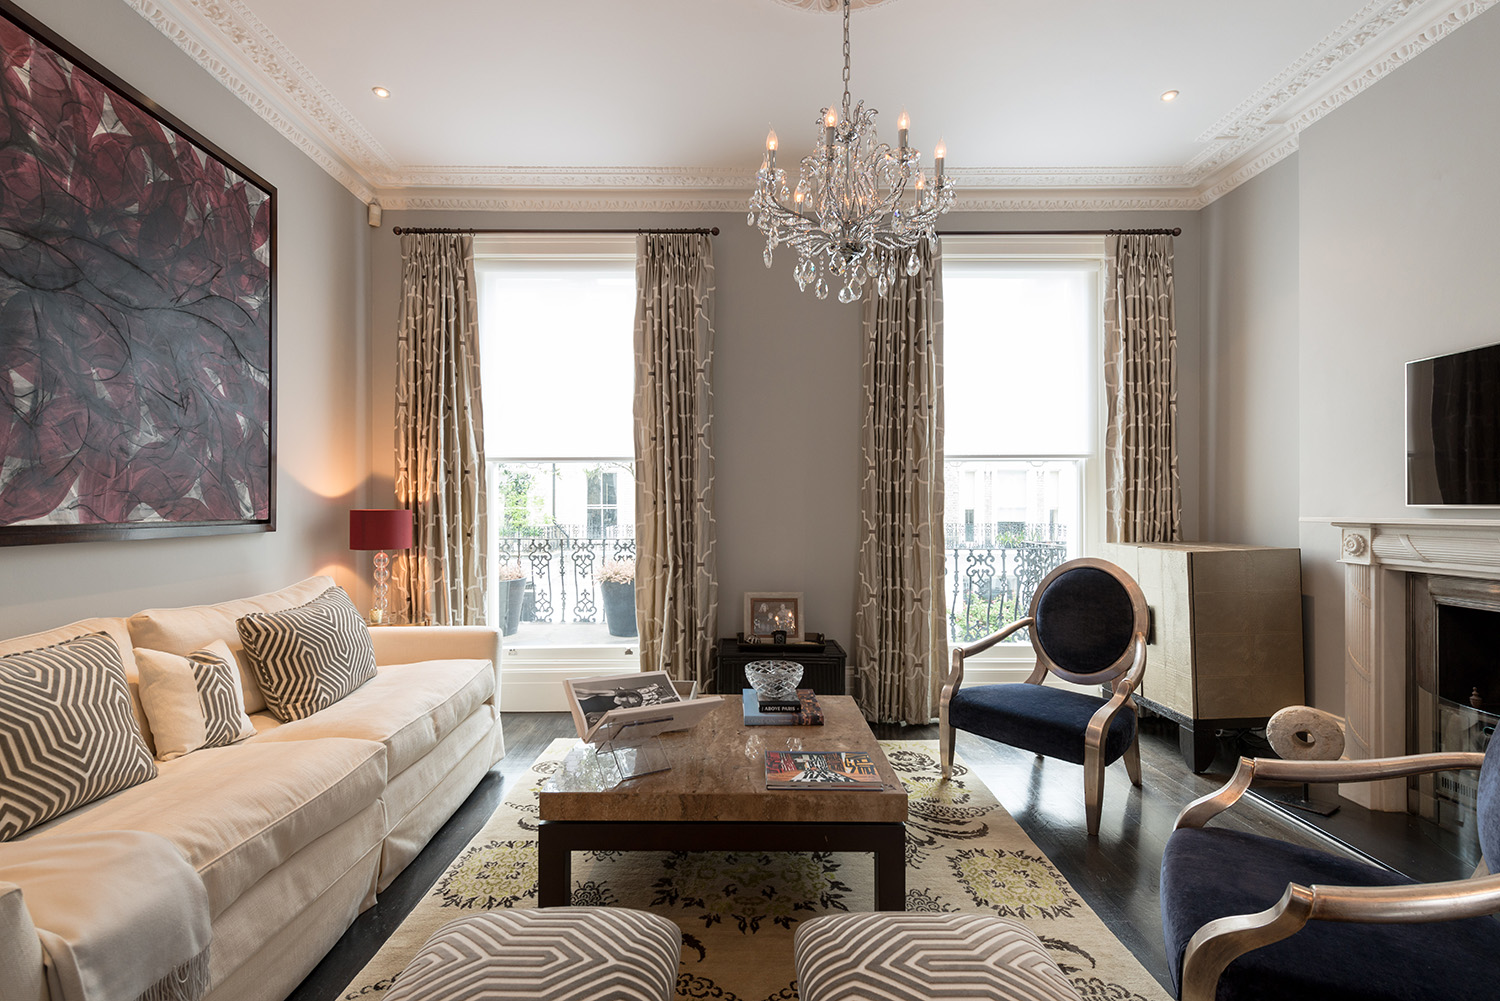 South kensington townhouse sw7 design box london for London house interior design